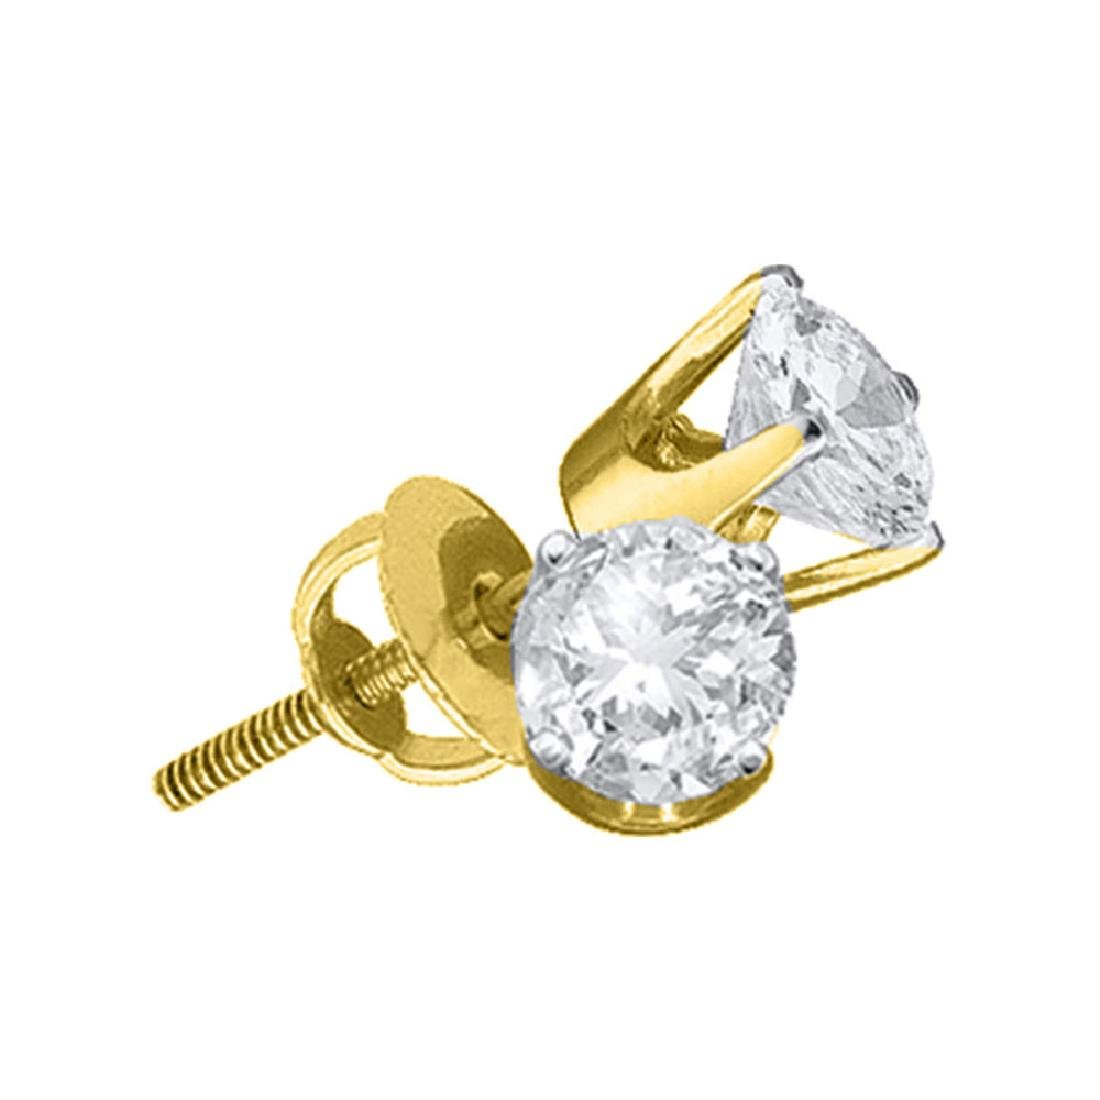 0.25 CTW Diamond Solitaire Stud Earrings 14KT Yellow